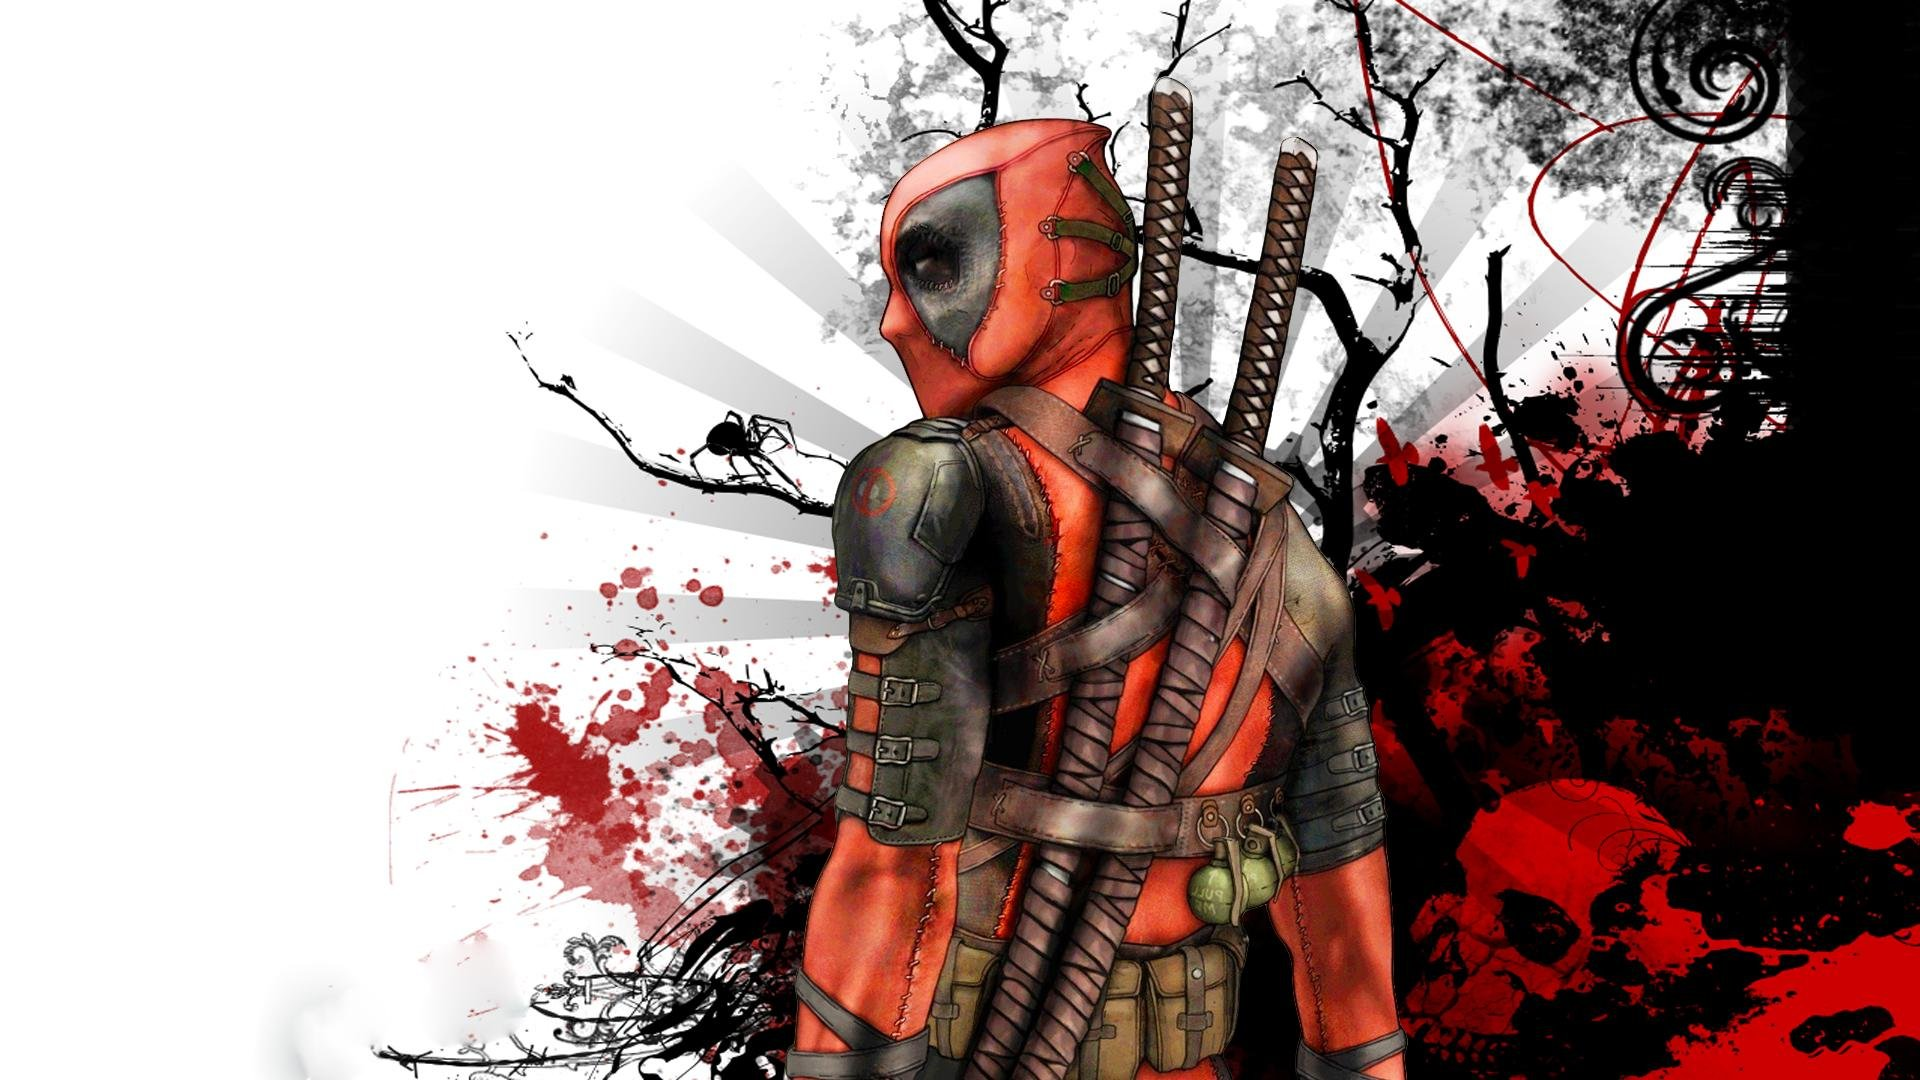 deadpool marvel comics avenger background hd wallpaper